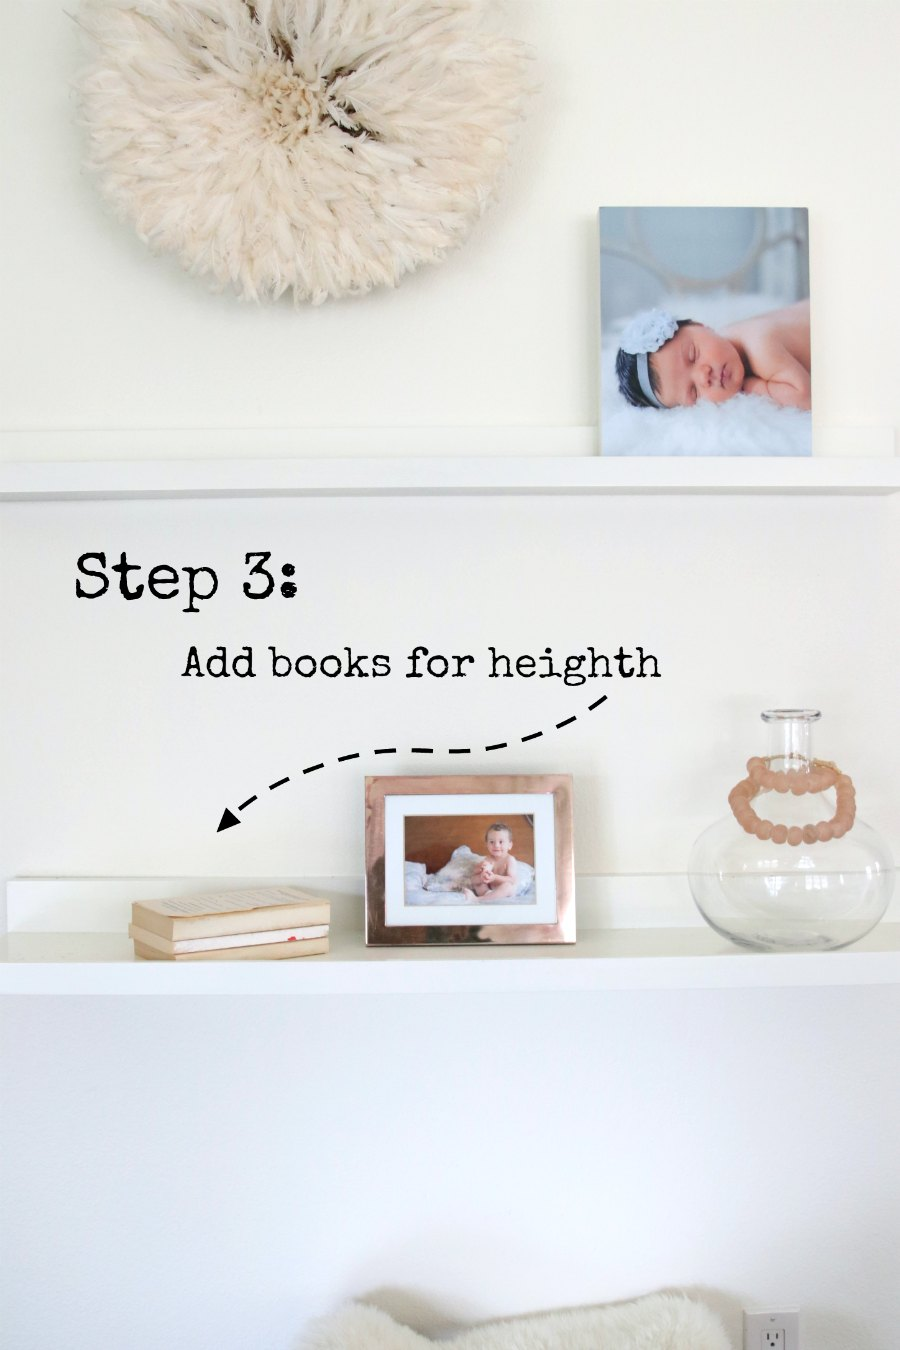 Step By Step Instructions on how to style your shelves